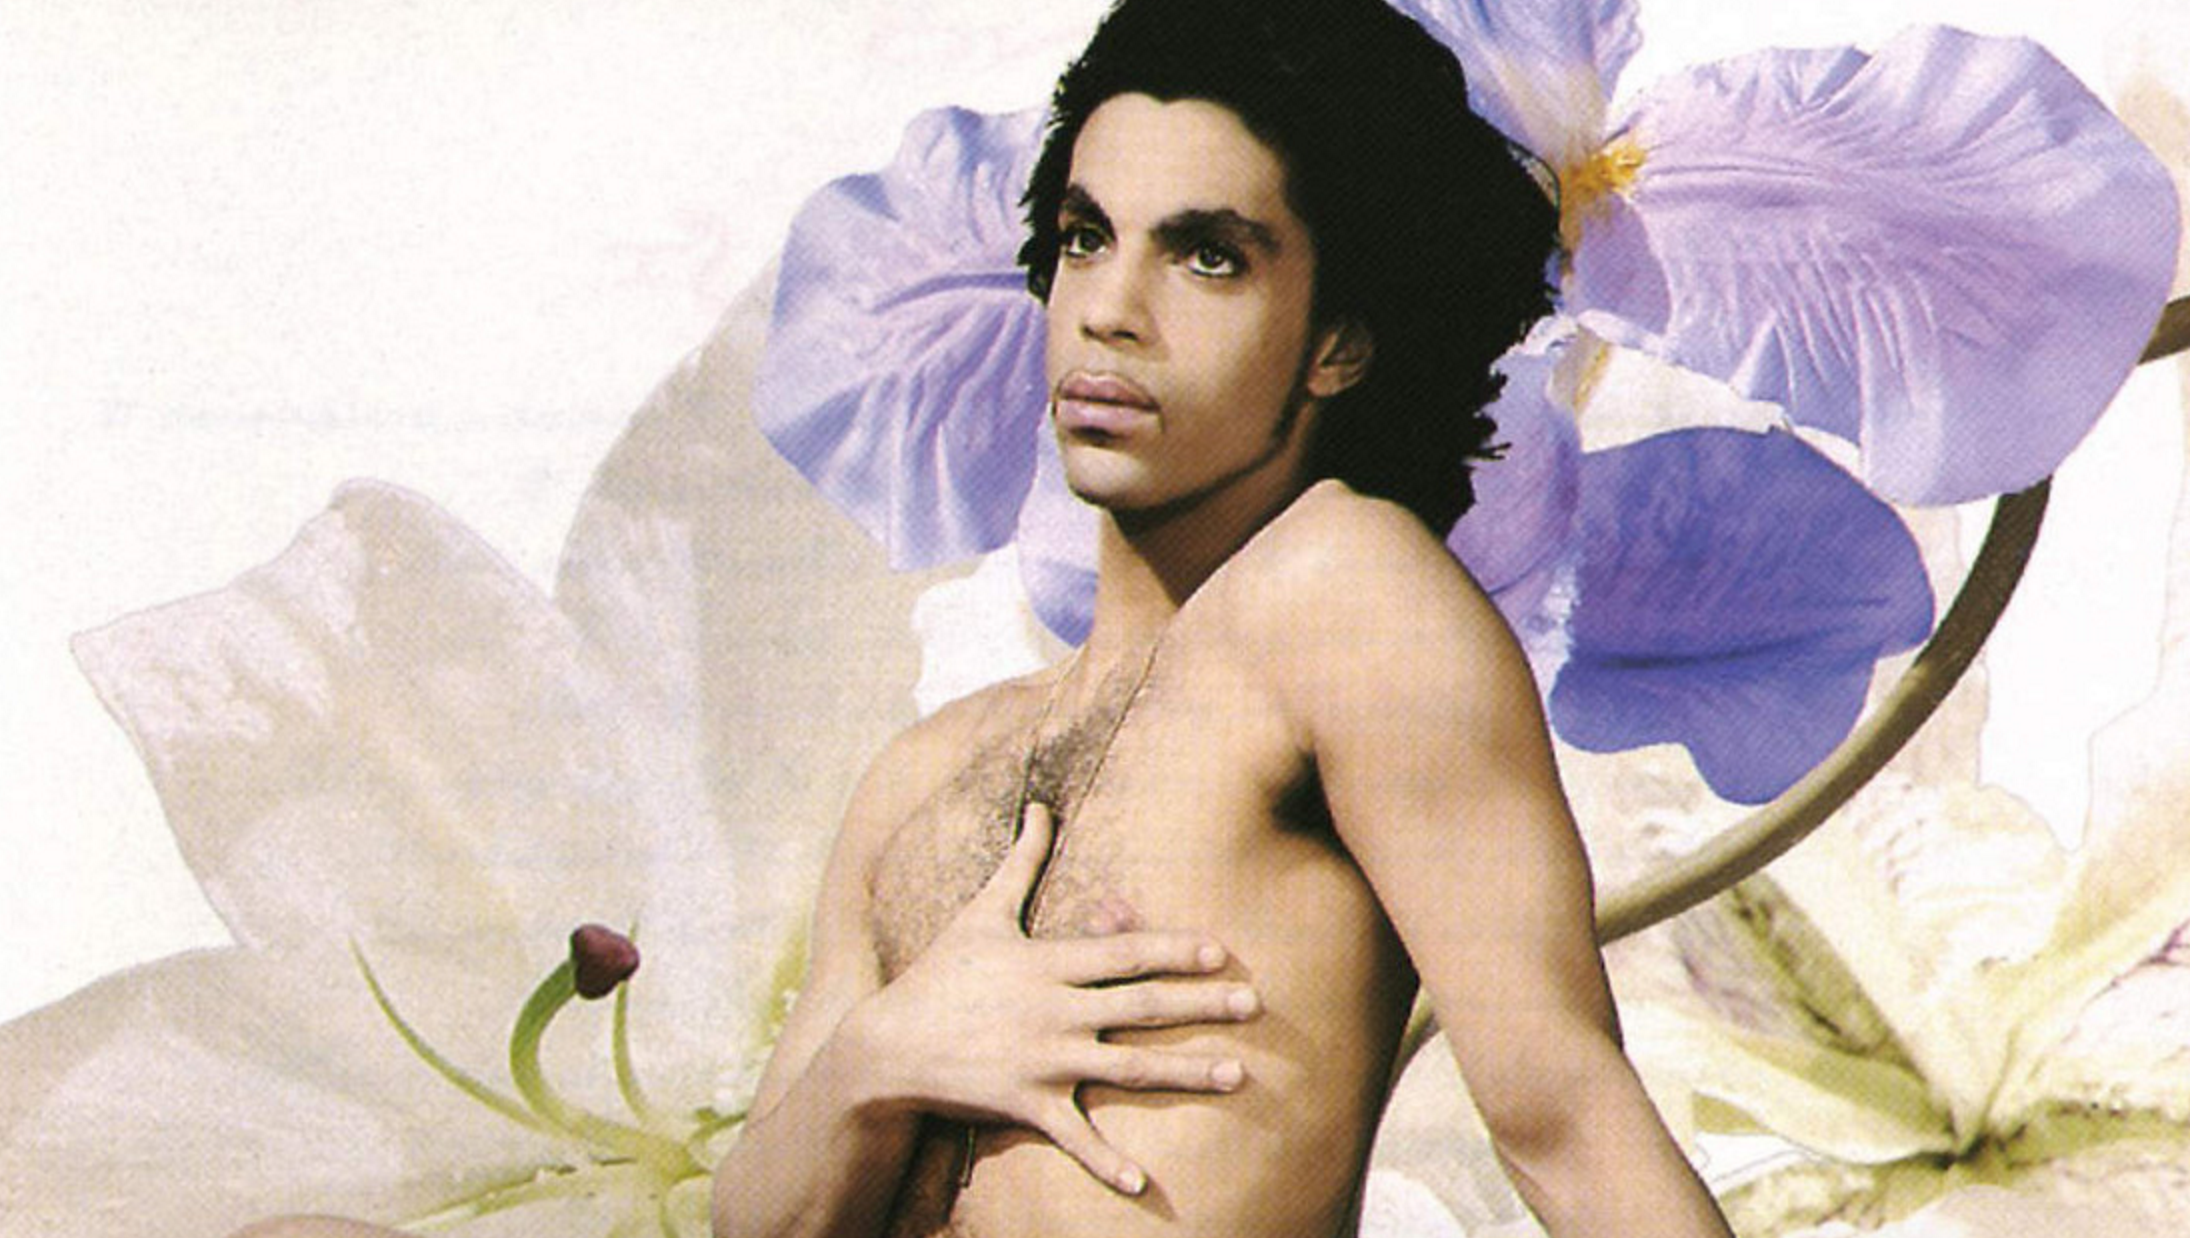 In fashion, Prince reigned supreme